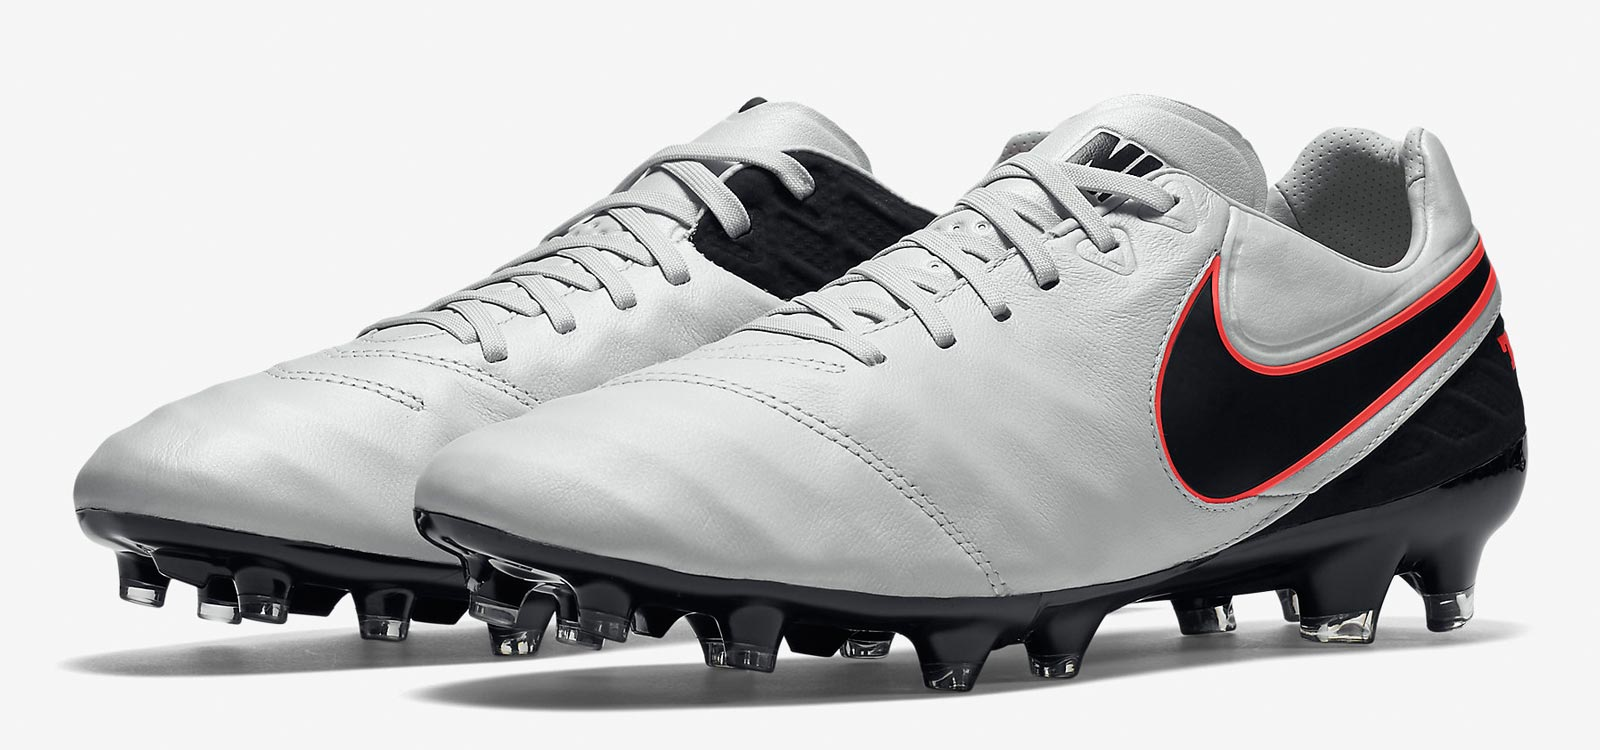 next gen nike tiempo legacy 2016 boots revealed footy. Black Bedroom Furniture Sets. Home Design Ideas